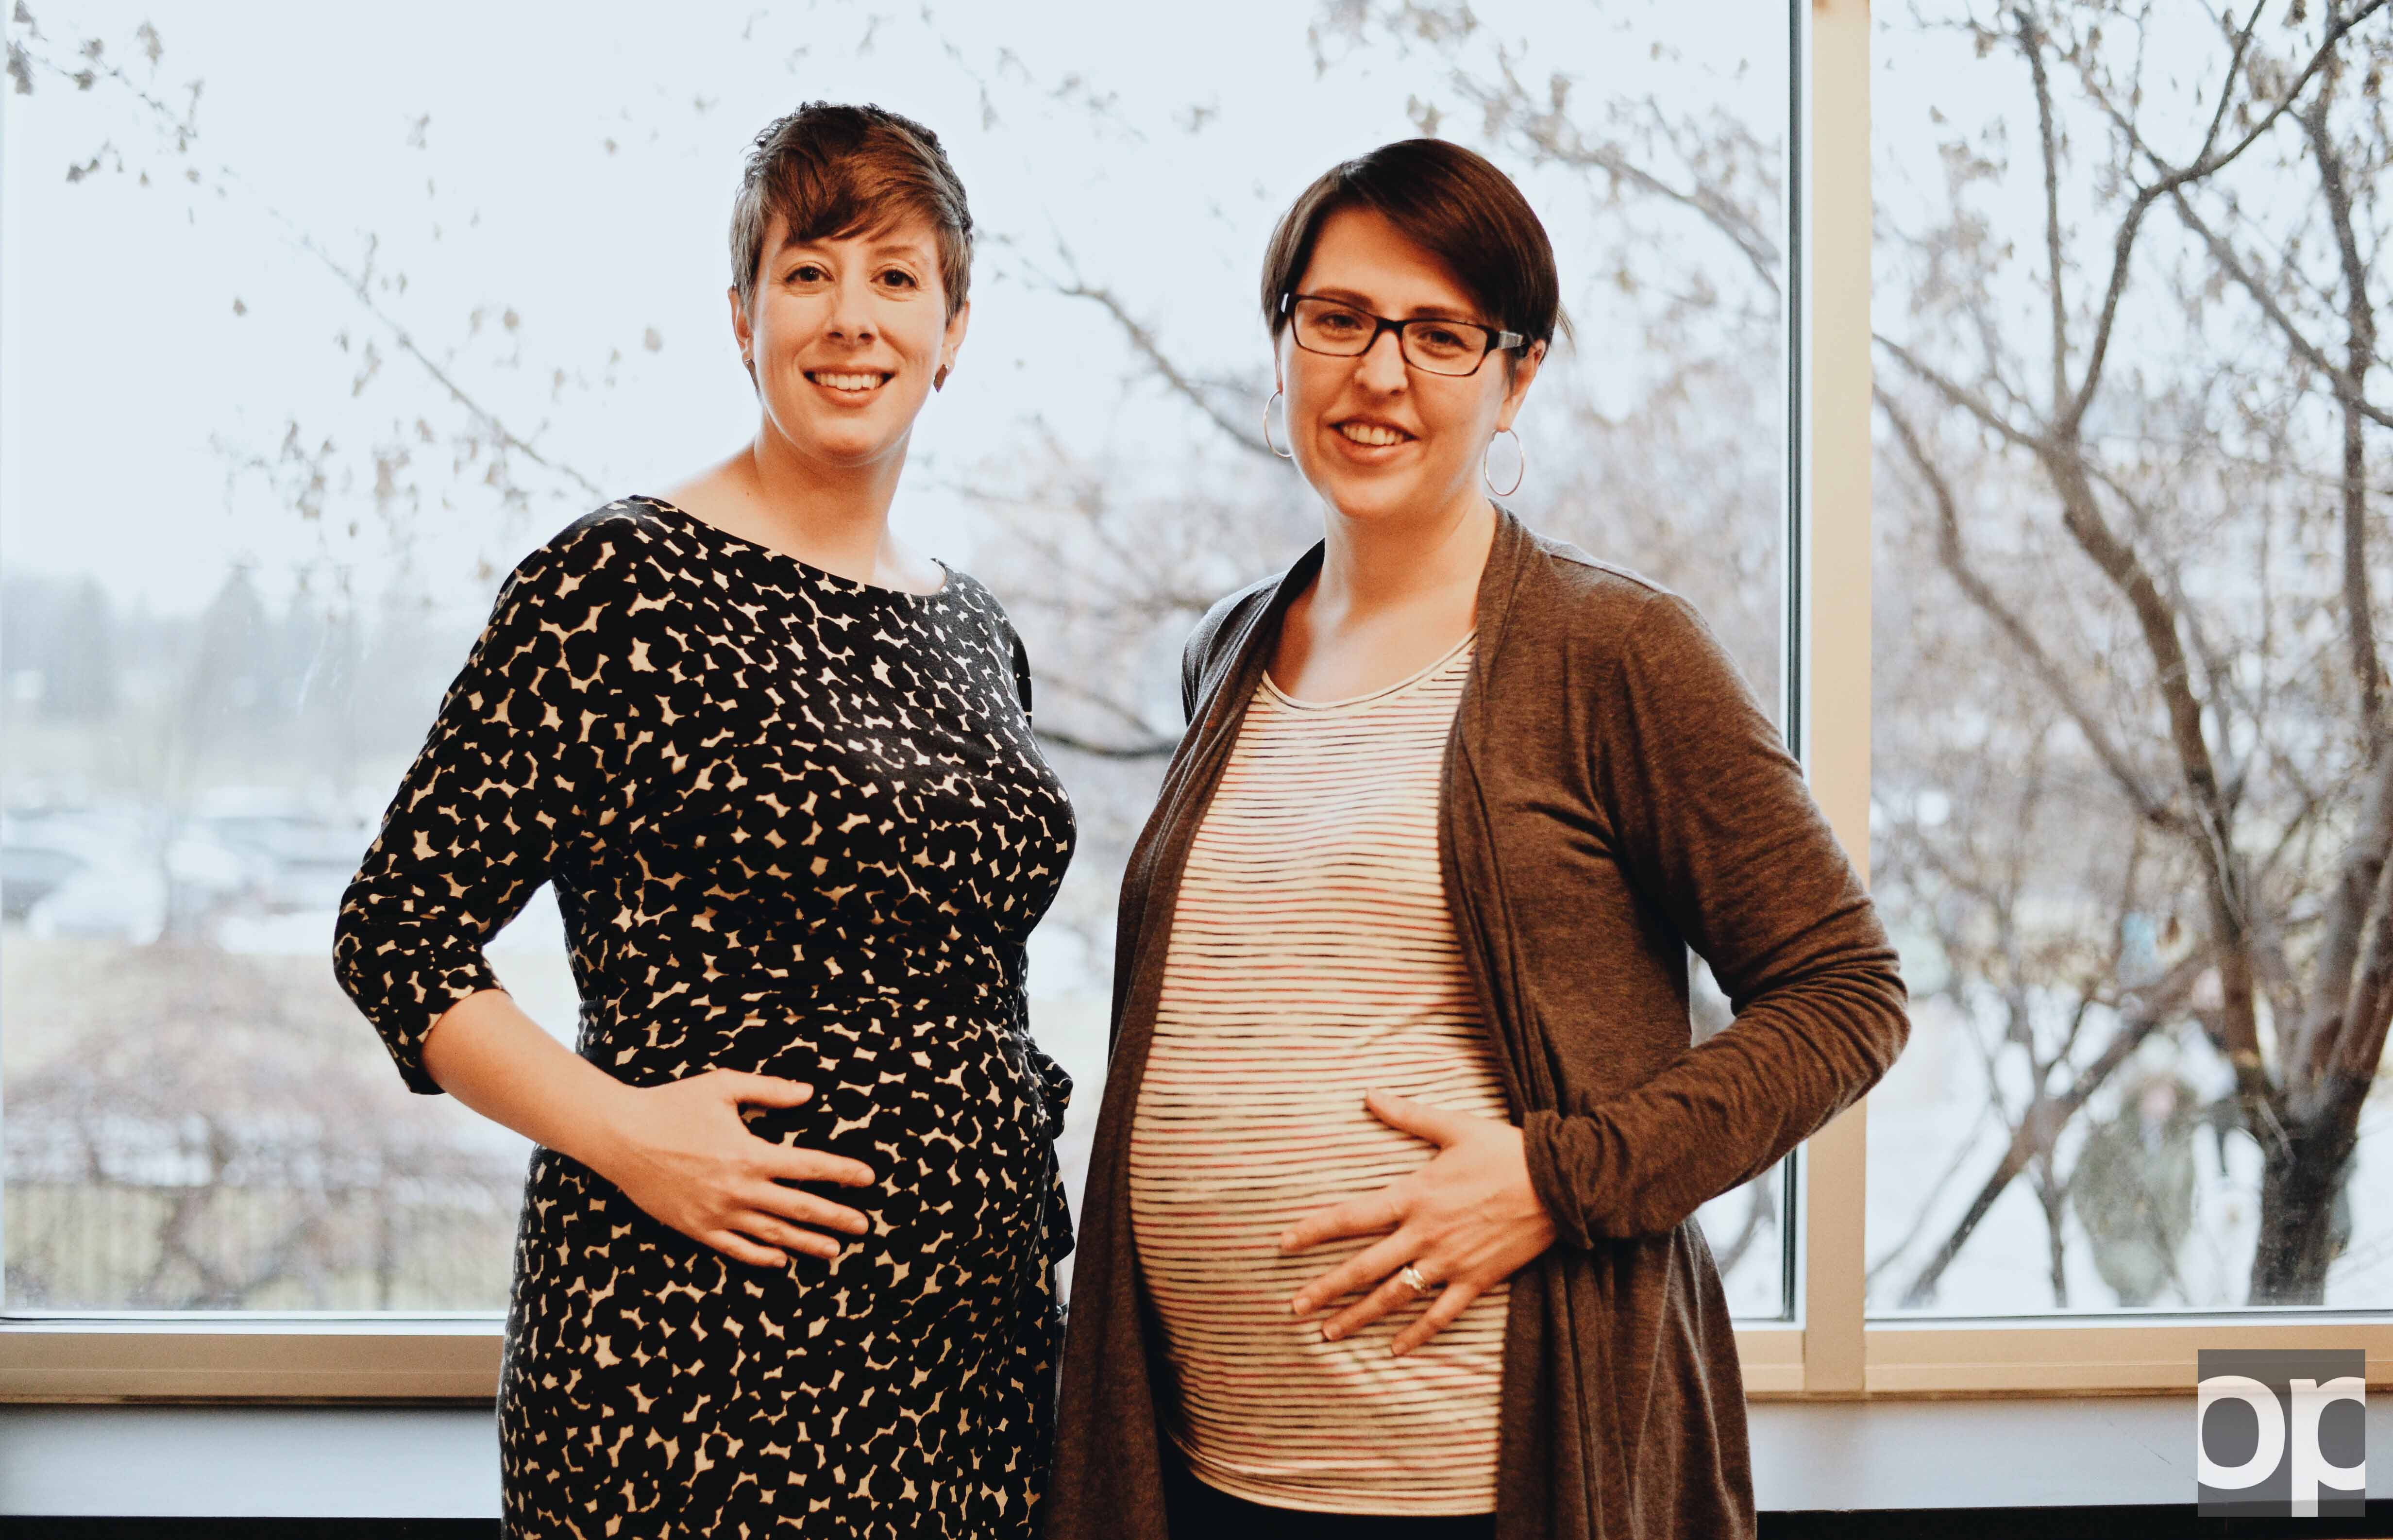 Faculty members Joanne Freed (left) and  Erin Meyers (right) will both be taking maternity leave soon.